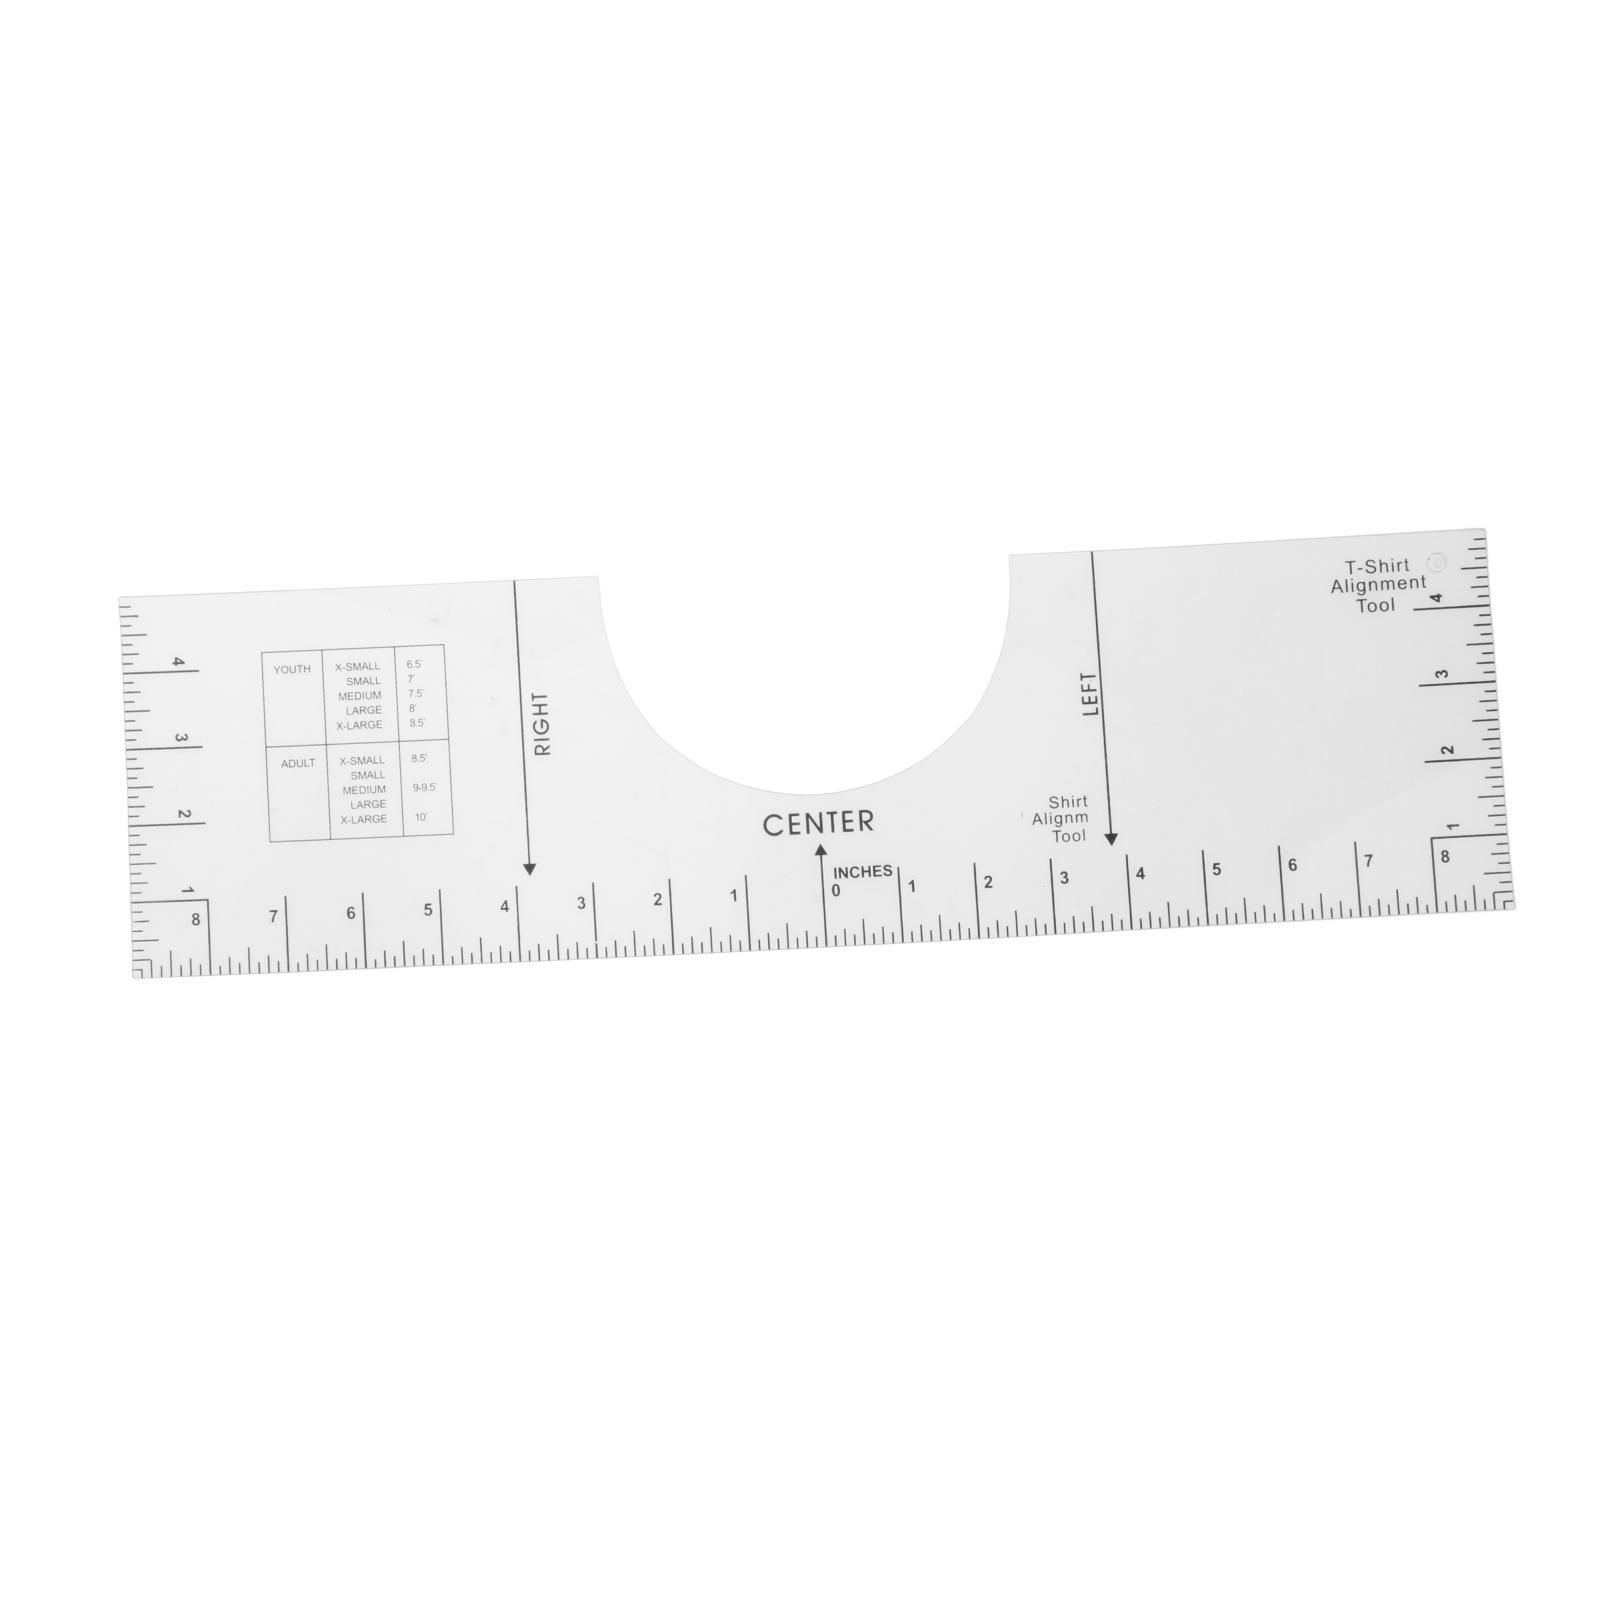 Heat Press T Shirt Centering Tool Kit 10x6 inch Fenteer 10x5//6 T-Shirt Ruler Guide Alignment Tool for Vinyl Placement Sublimation